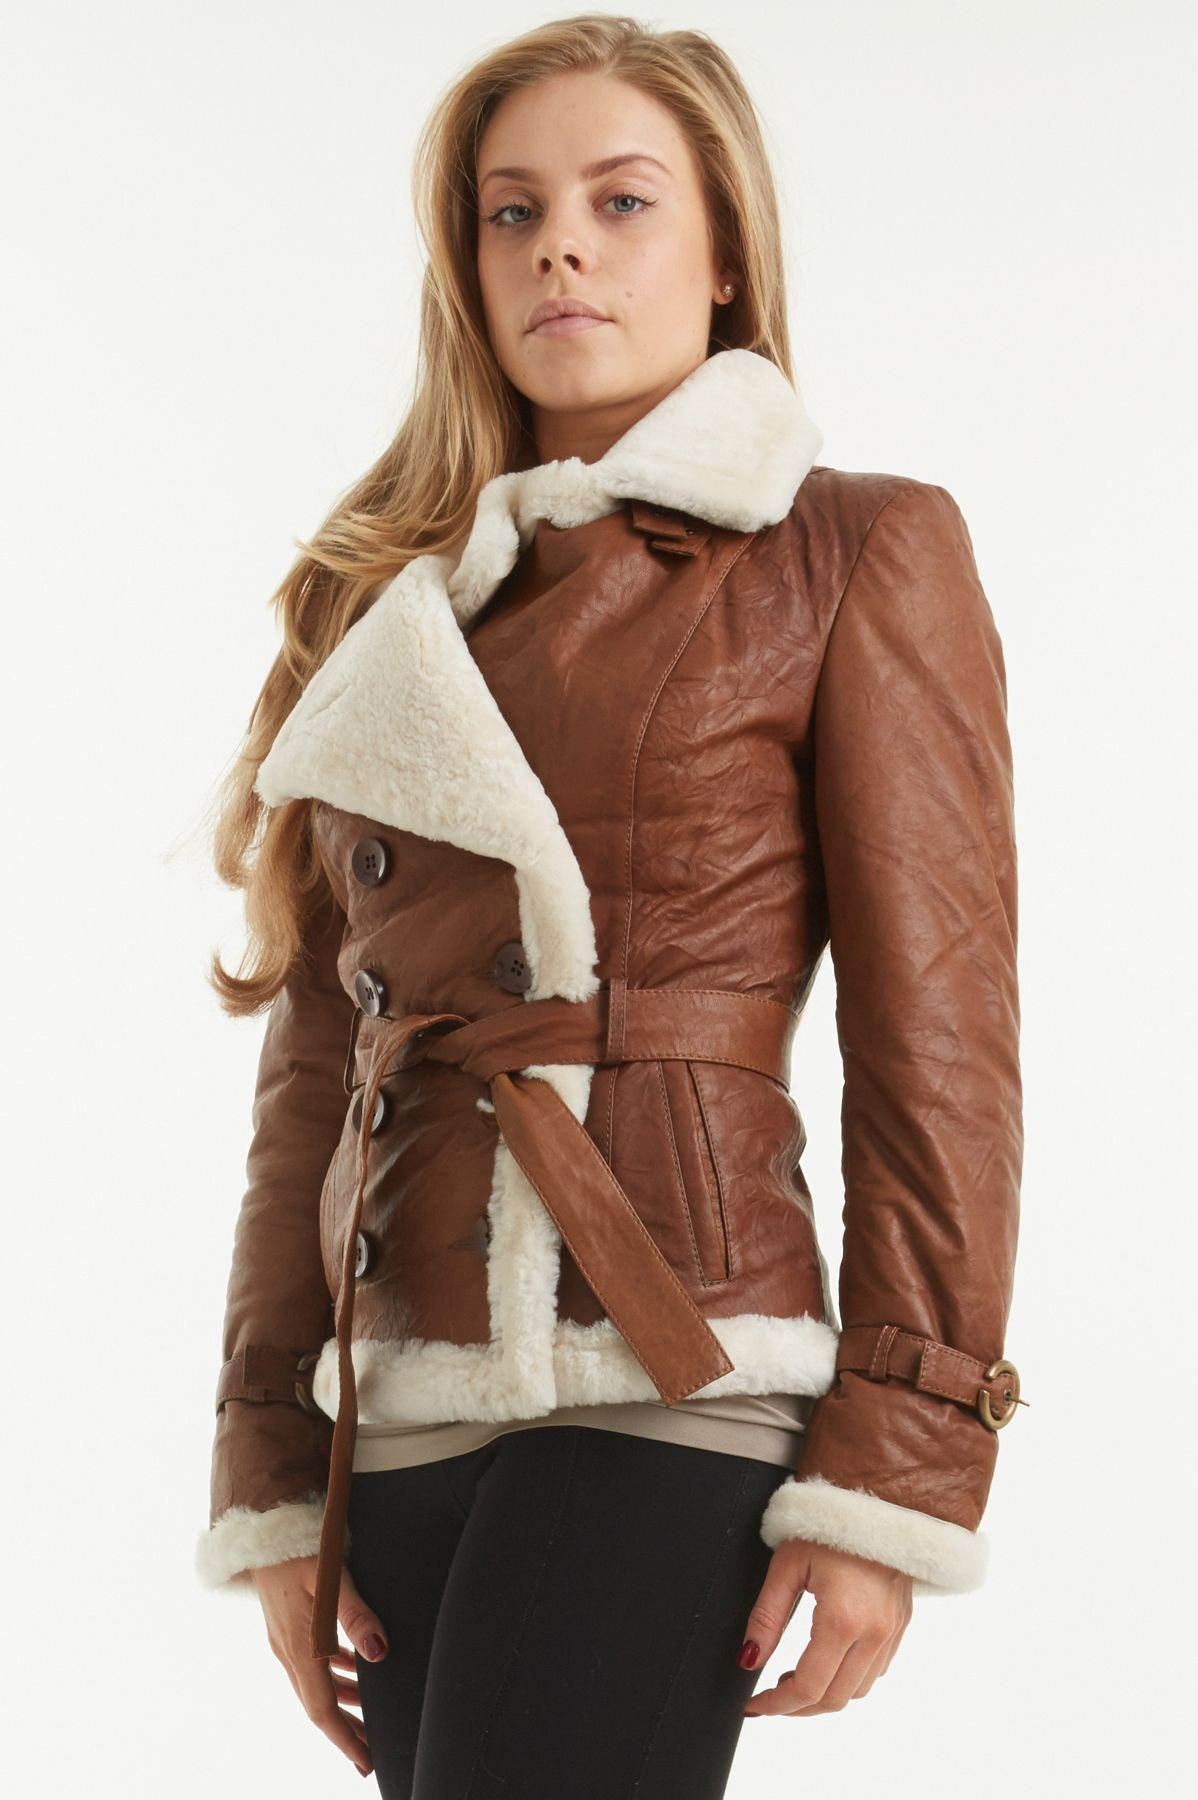 women-leather-jacket | Brown Leather Jacket | Pinterest | Brown ...